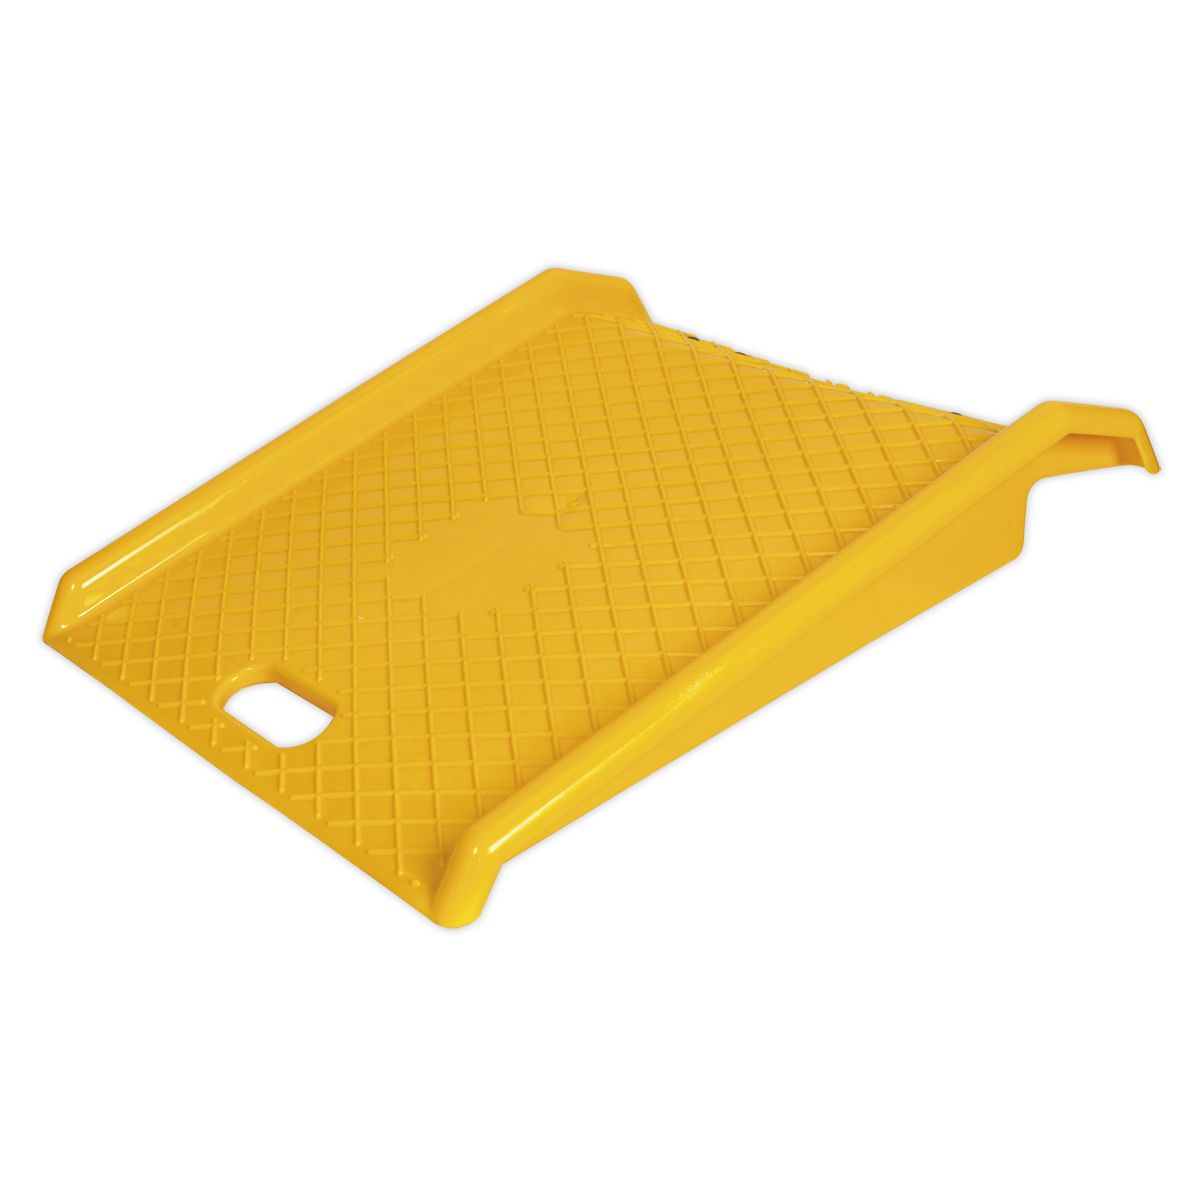 Portable Access Ramp 450kg Capacity   SEALEY PAR01 by Sealey   New